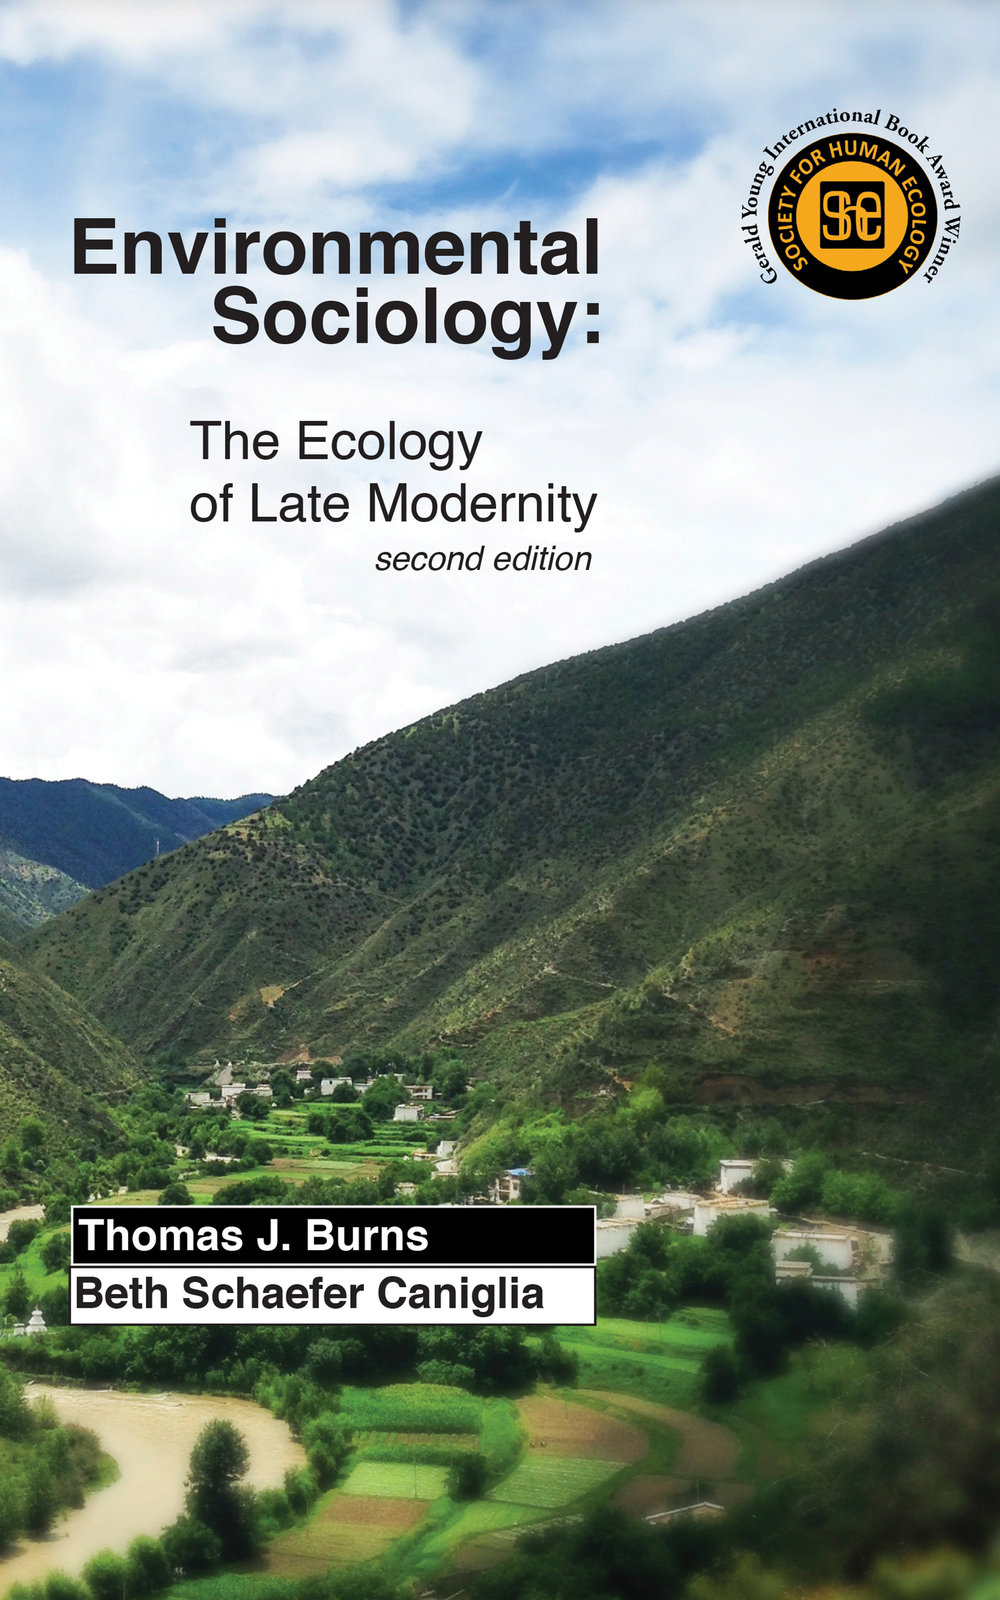 env_sociology_cover2.jpg